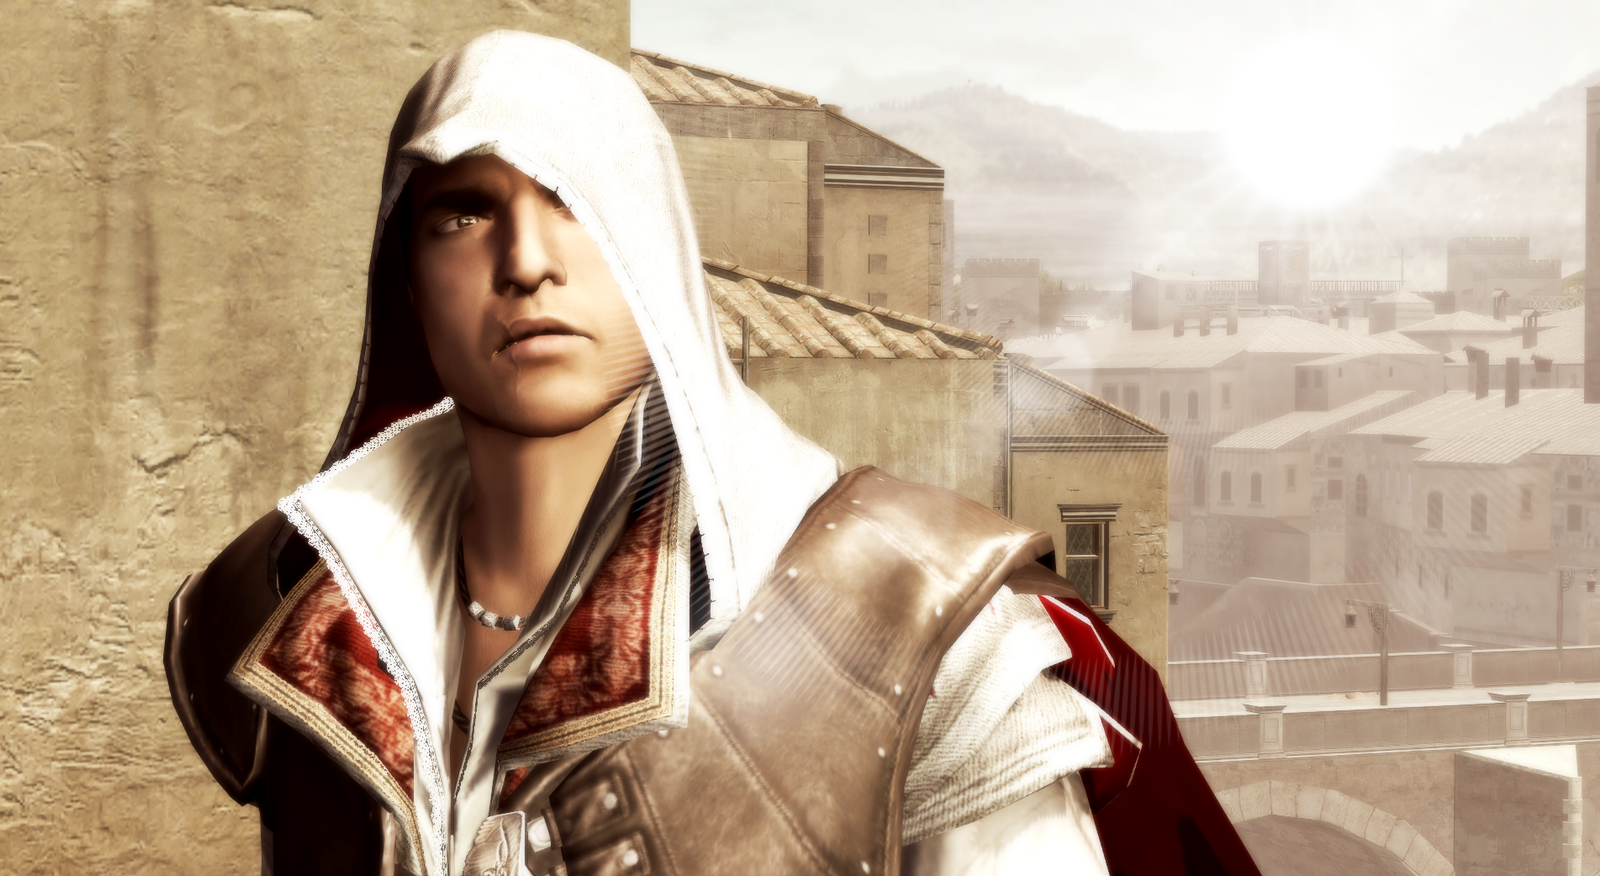 ezio assassins creed ii - photo #42